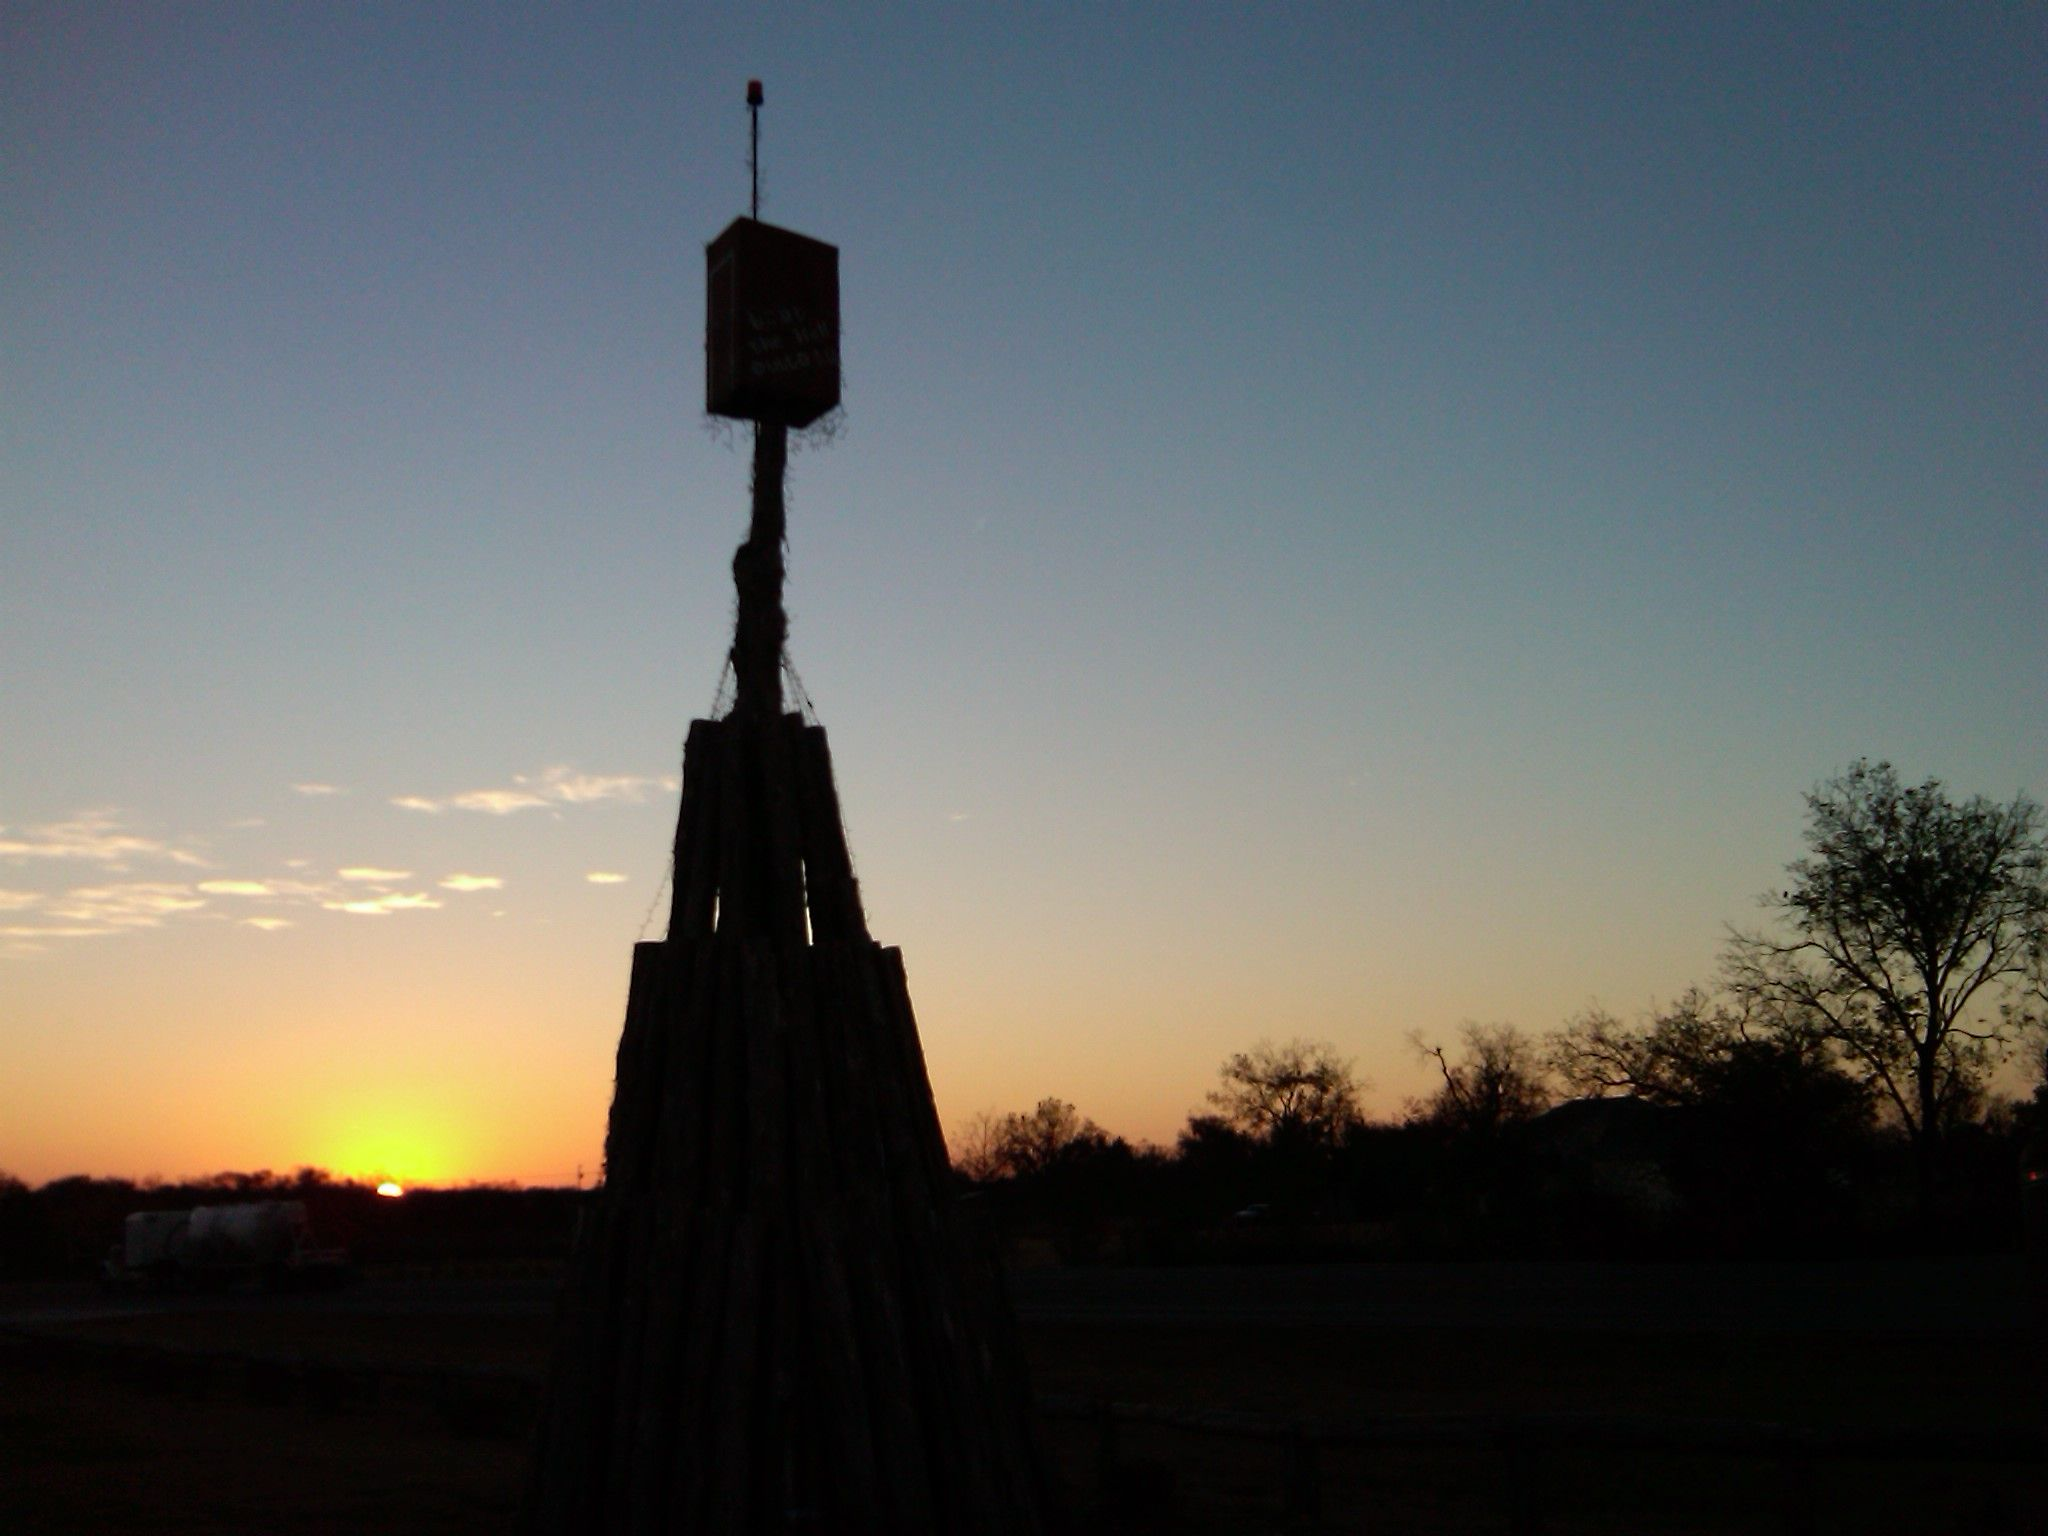 Sunrise at the Whoop Stop